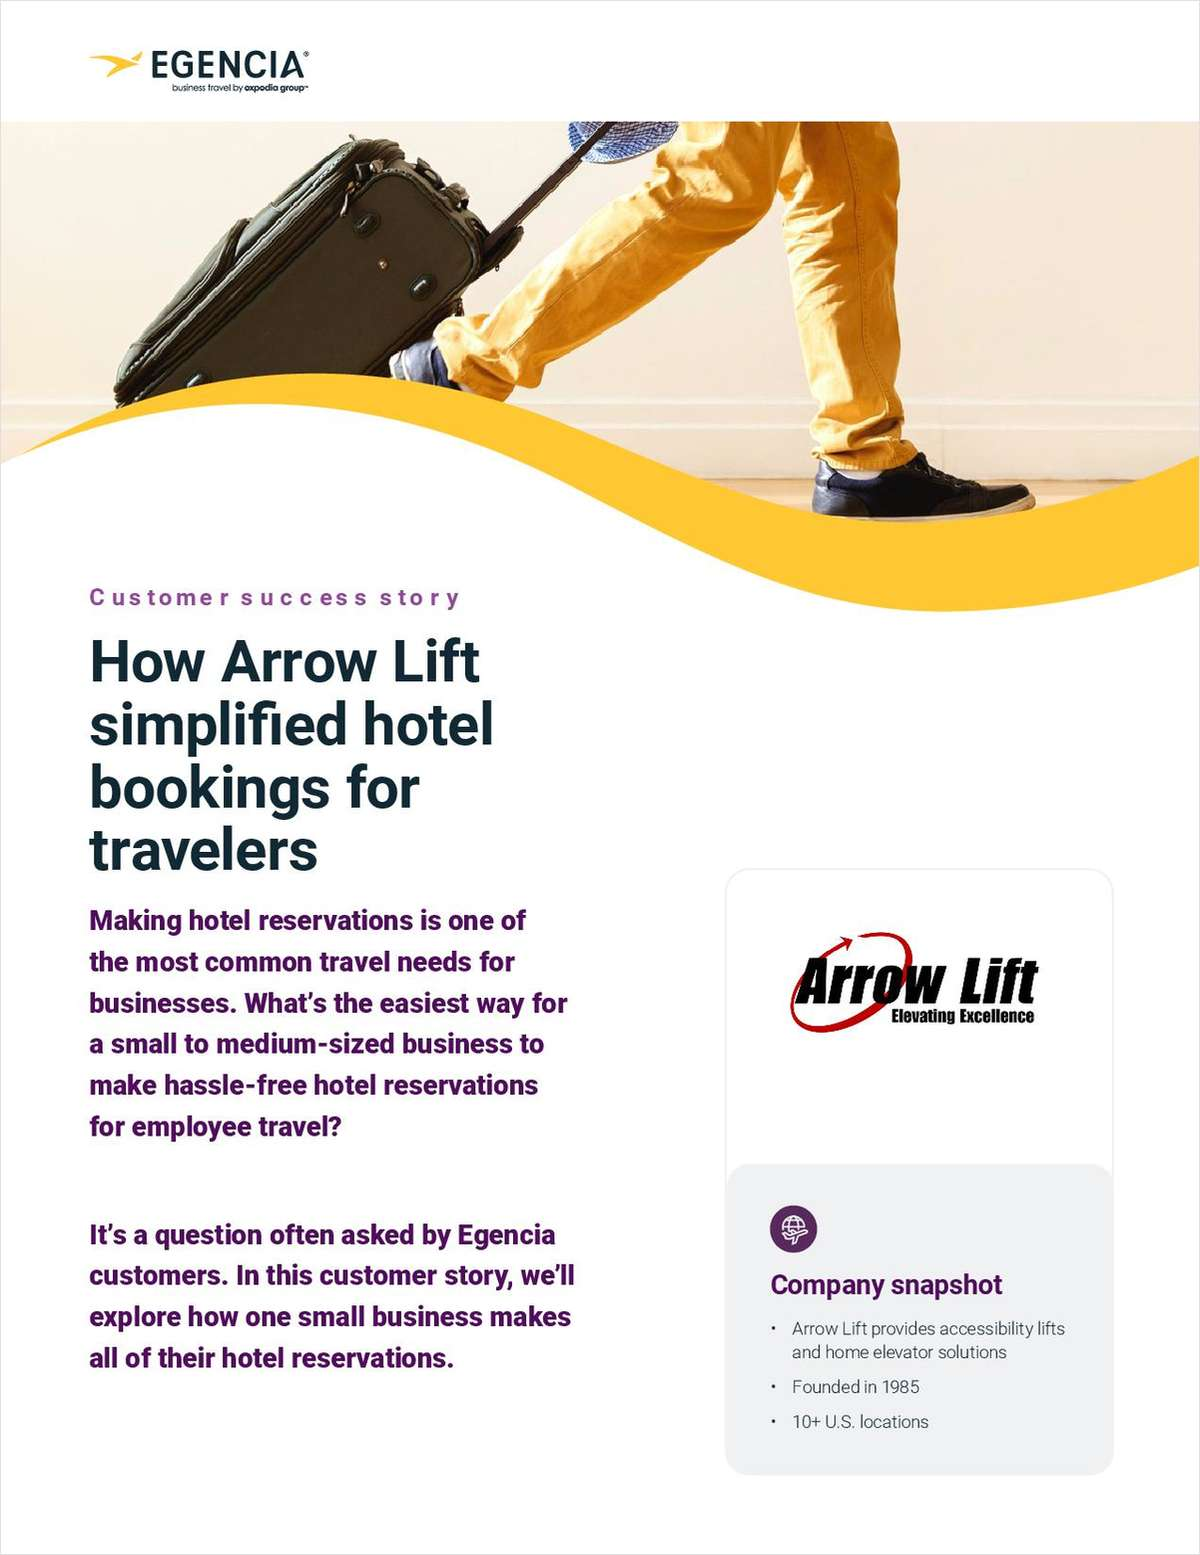 How Arrow Lift Simplified Hotel Bookings for Travelers